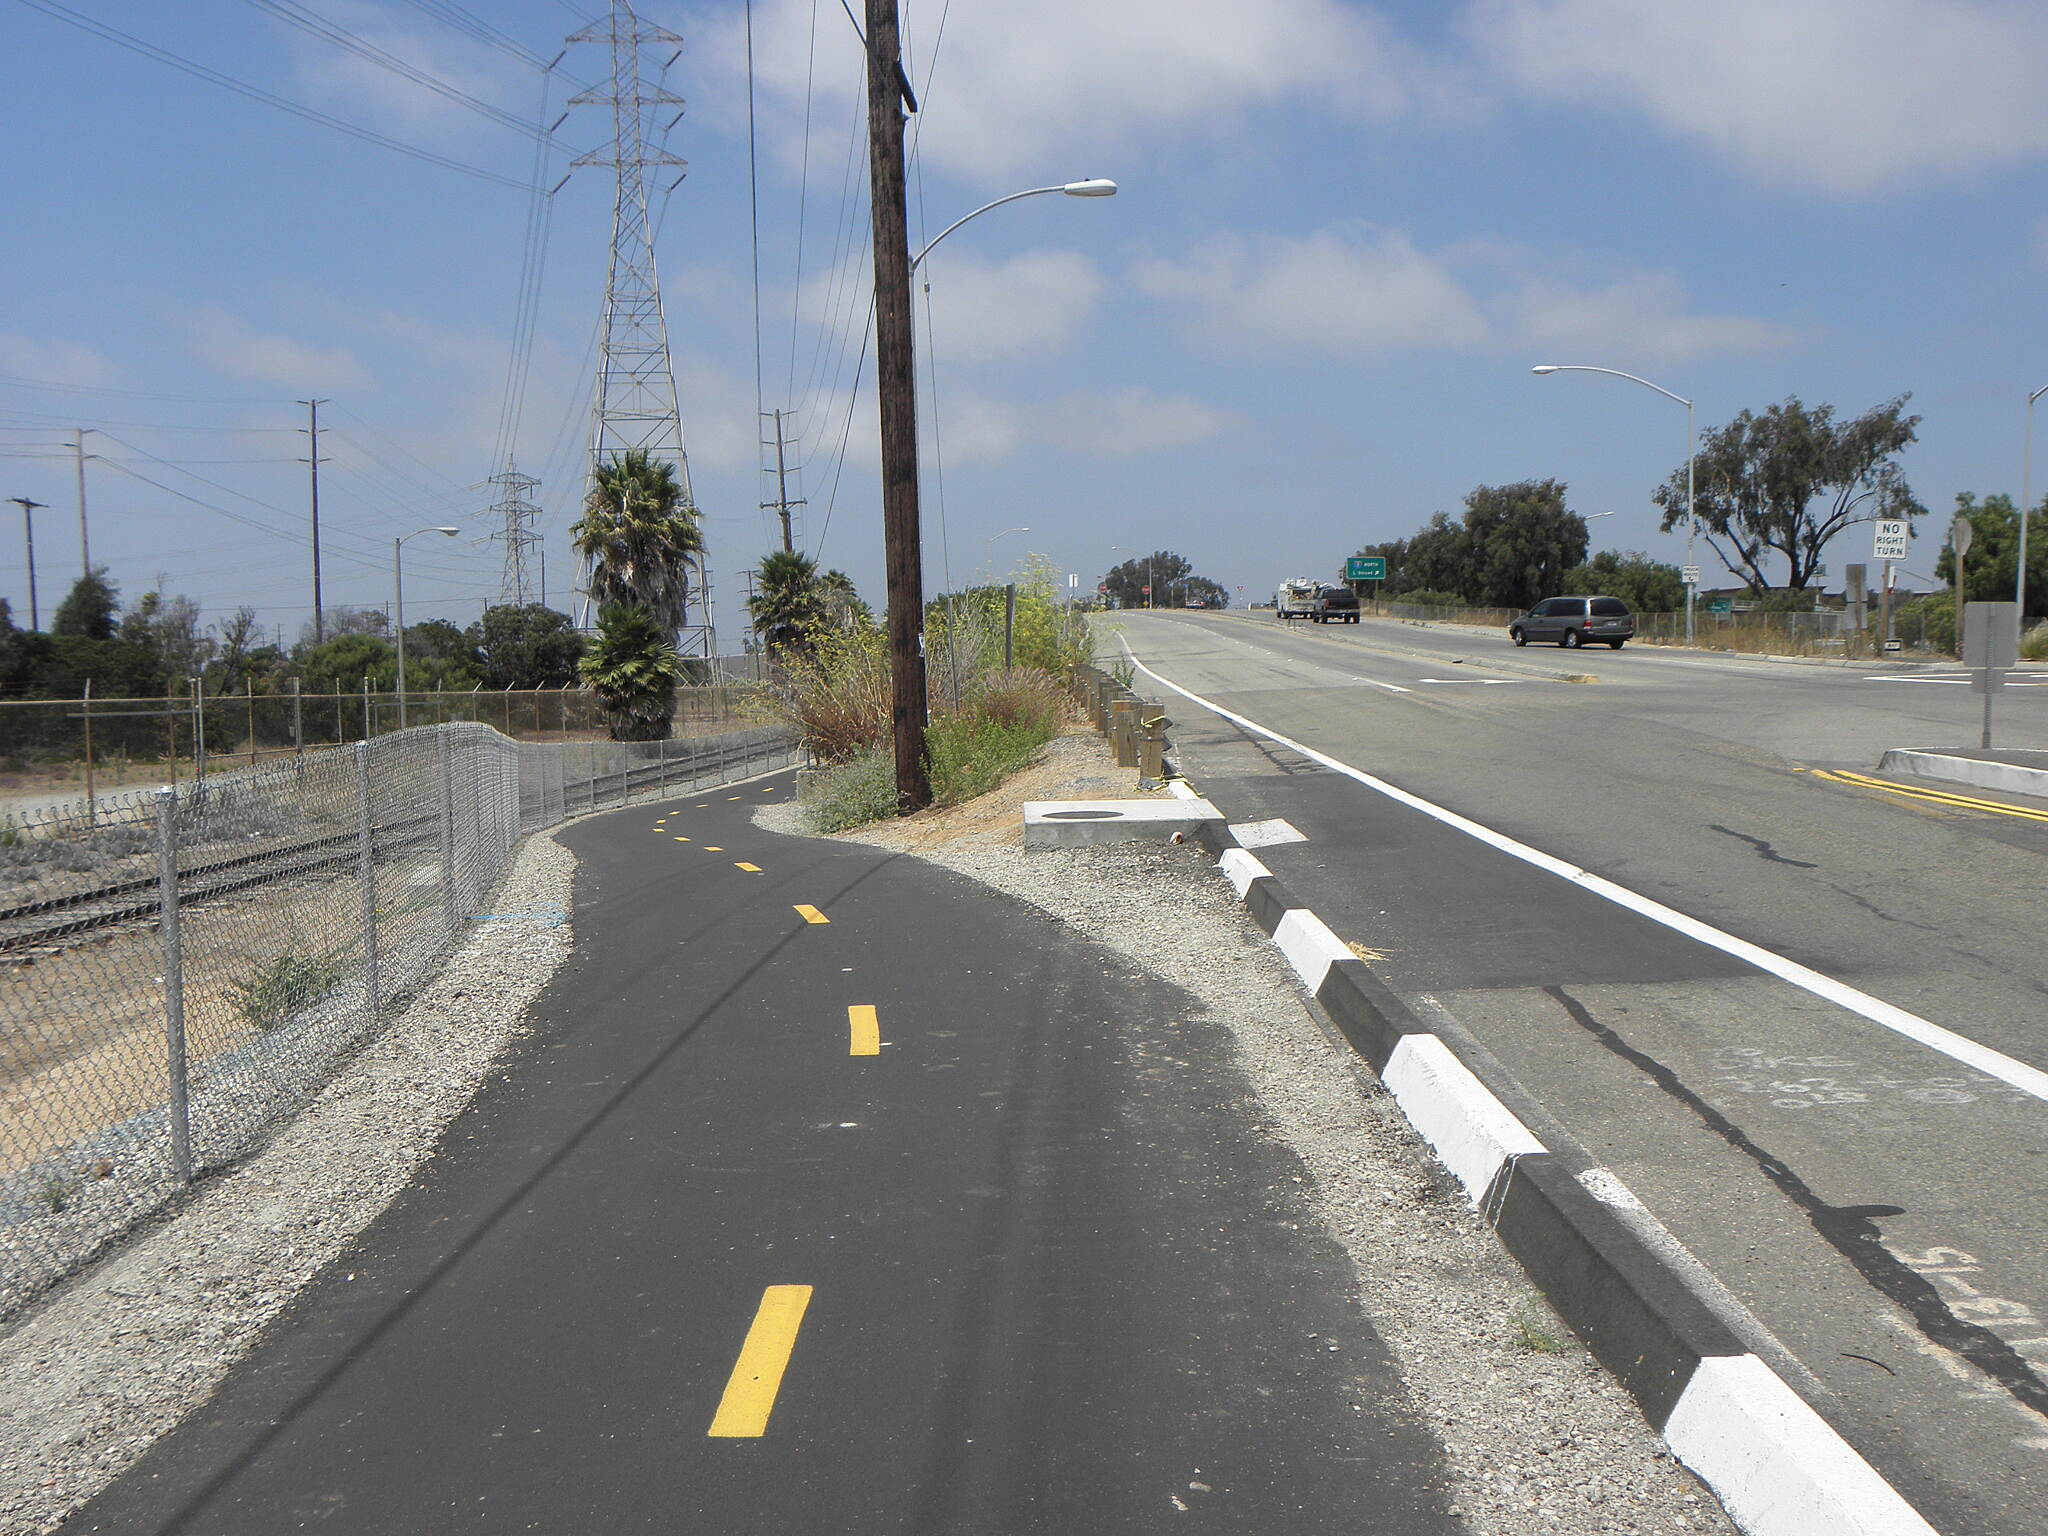 Bayshore Bikeway New trail section in the Southeast area. This gets the Bayshore Bikeway off Bay Blvd. in Chula Vista and avoids a bad intersection for northbound bikers at L Street. The section goes 1.8 mi. from Palomar St. to H Street.